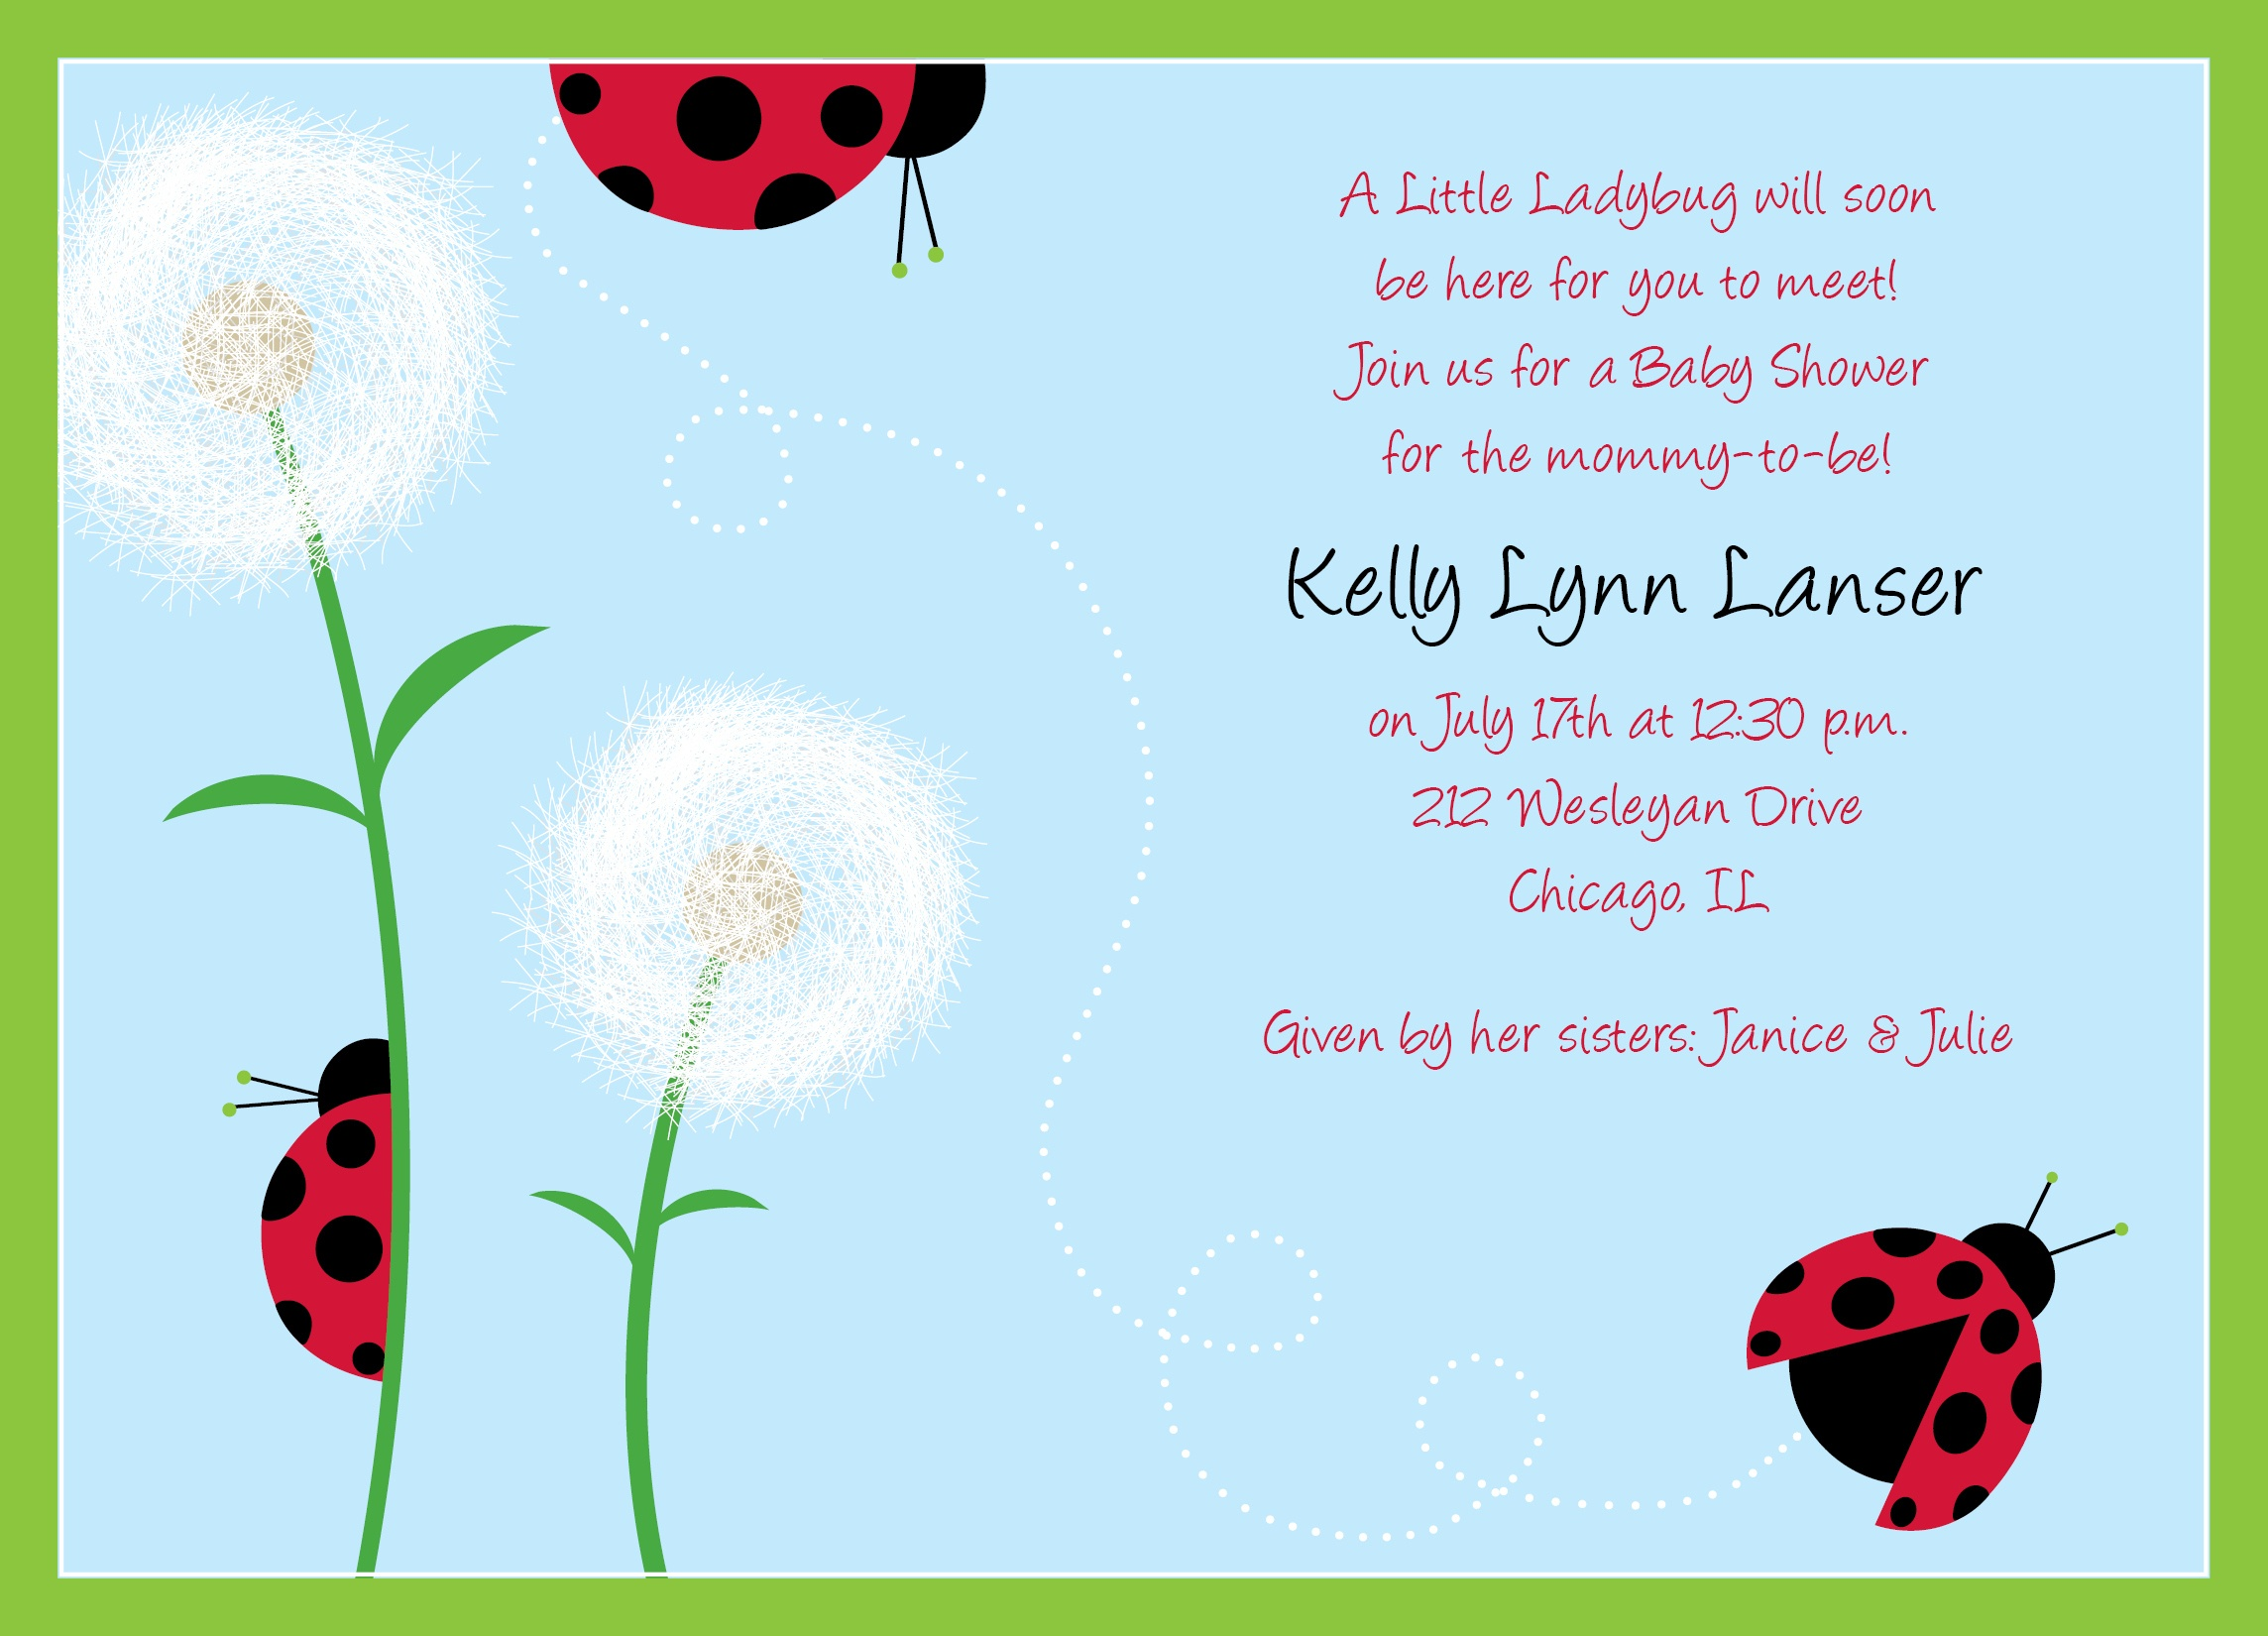 Photo : Nw Rlp 443 Jpg Image - Free Printable Ladybug Baby Shower Invitations Templates